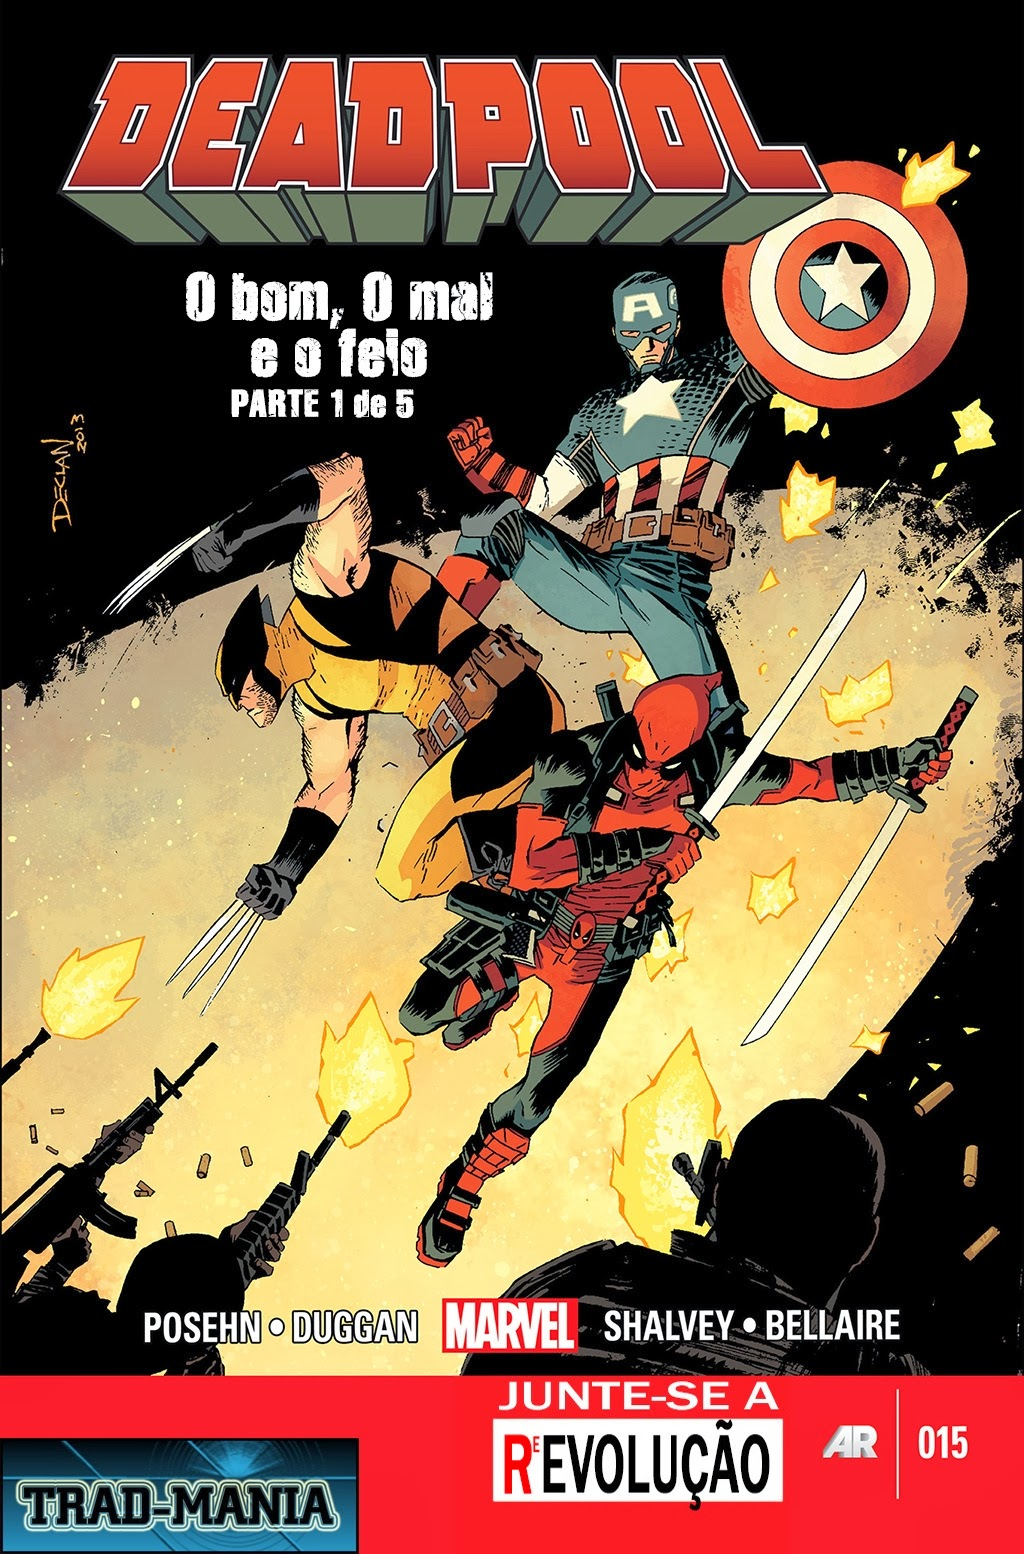 Nova Marvel! Deadpool v5 #15